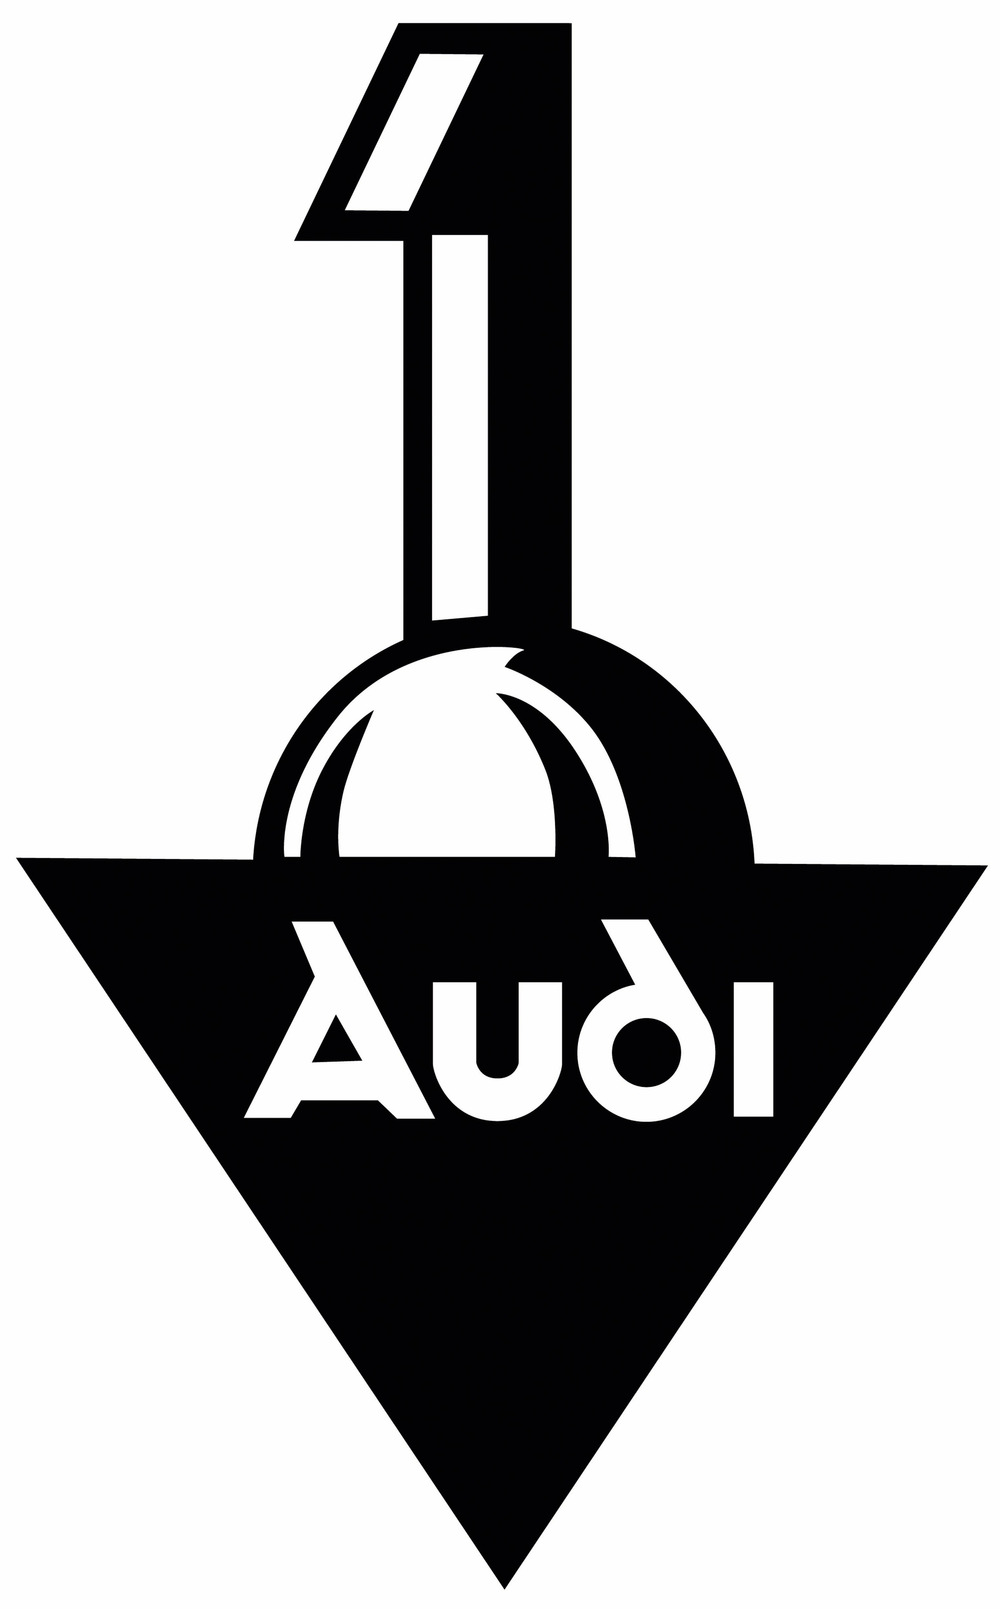 The original Audi logo. Note the typeface.